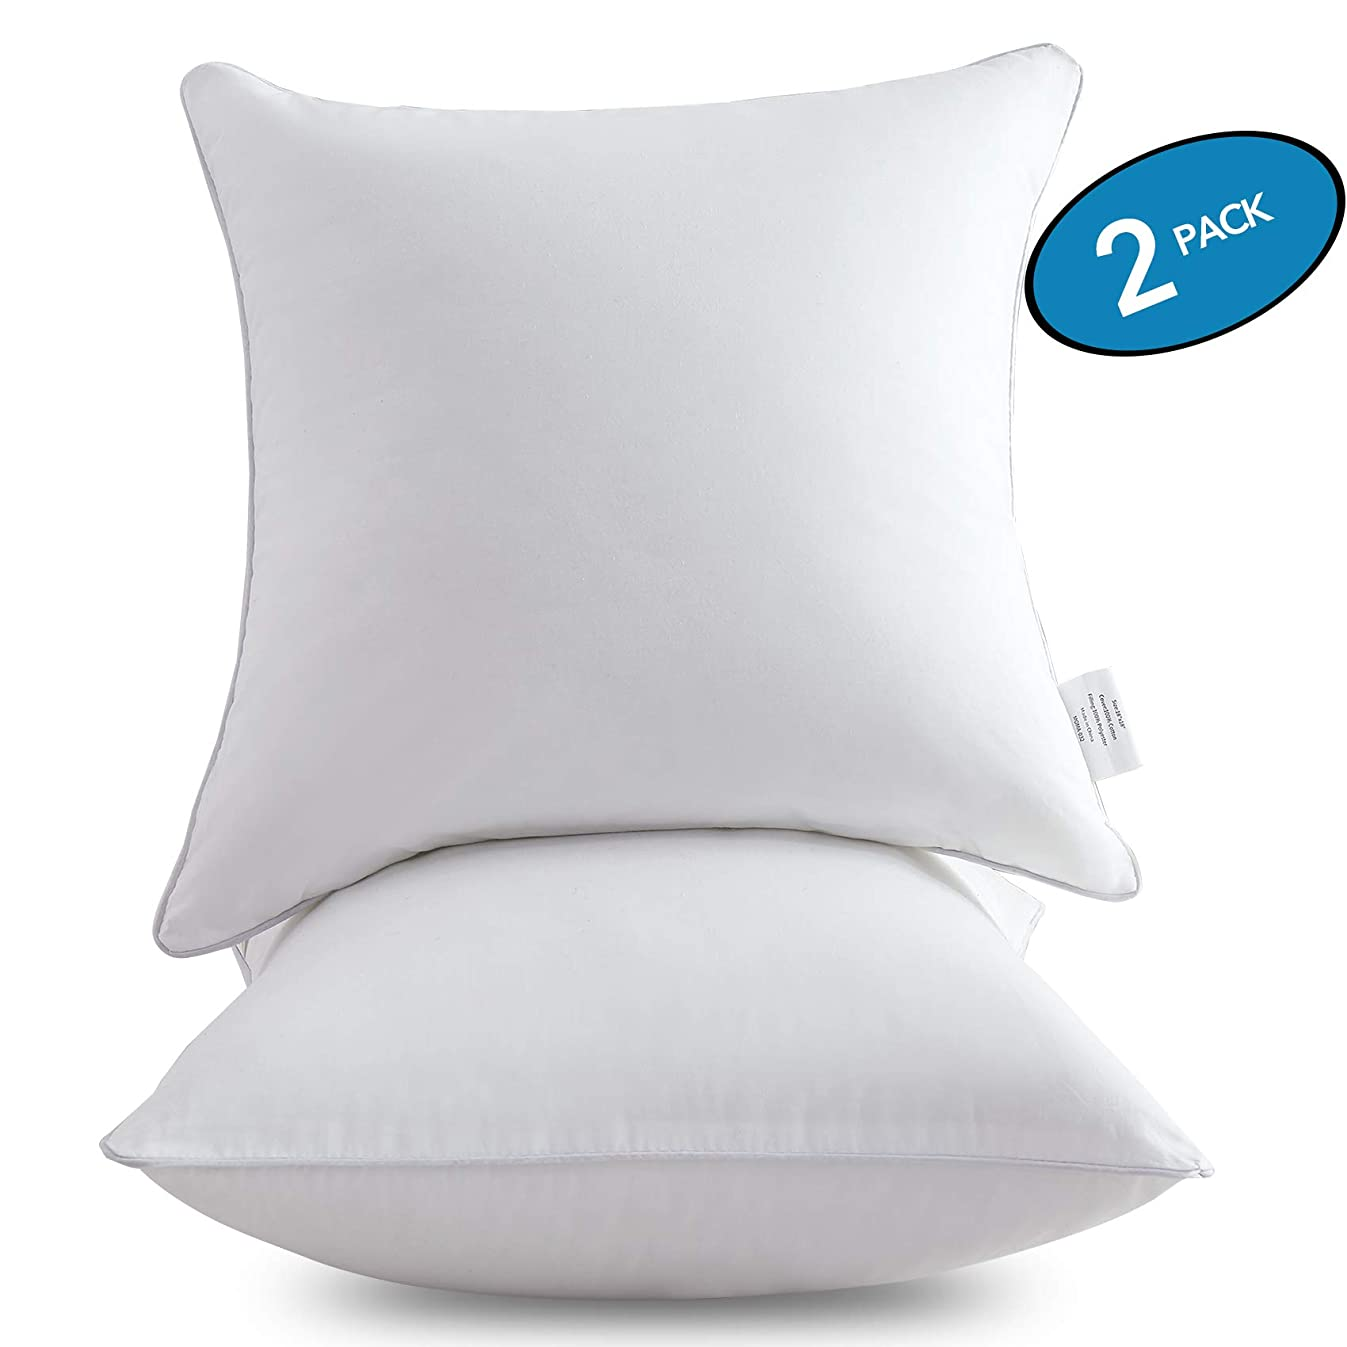 MoMA 18 x 18 Pillow Inserts (Set of 2) - Throw Pillow Inserts with 100% Cotton Cover - 18 Inch Square Interior Sofa Pillow Inserts - Decorative Pillow Insert Pair - White Couch Pillow